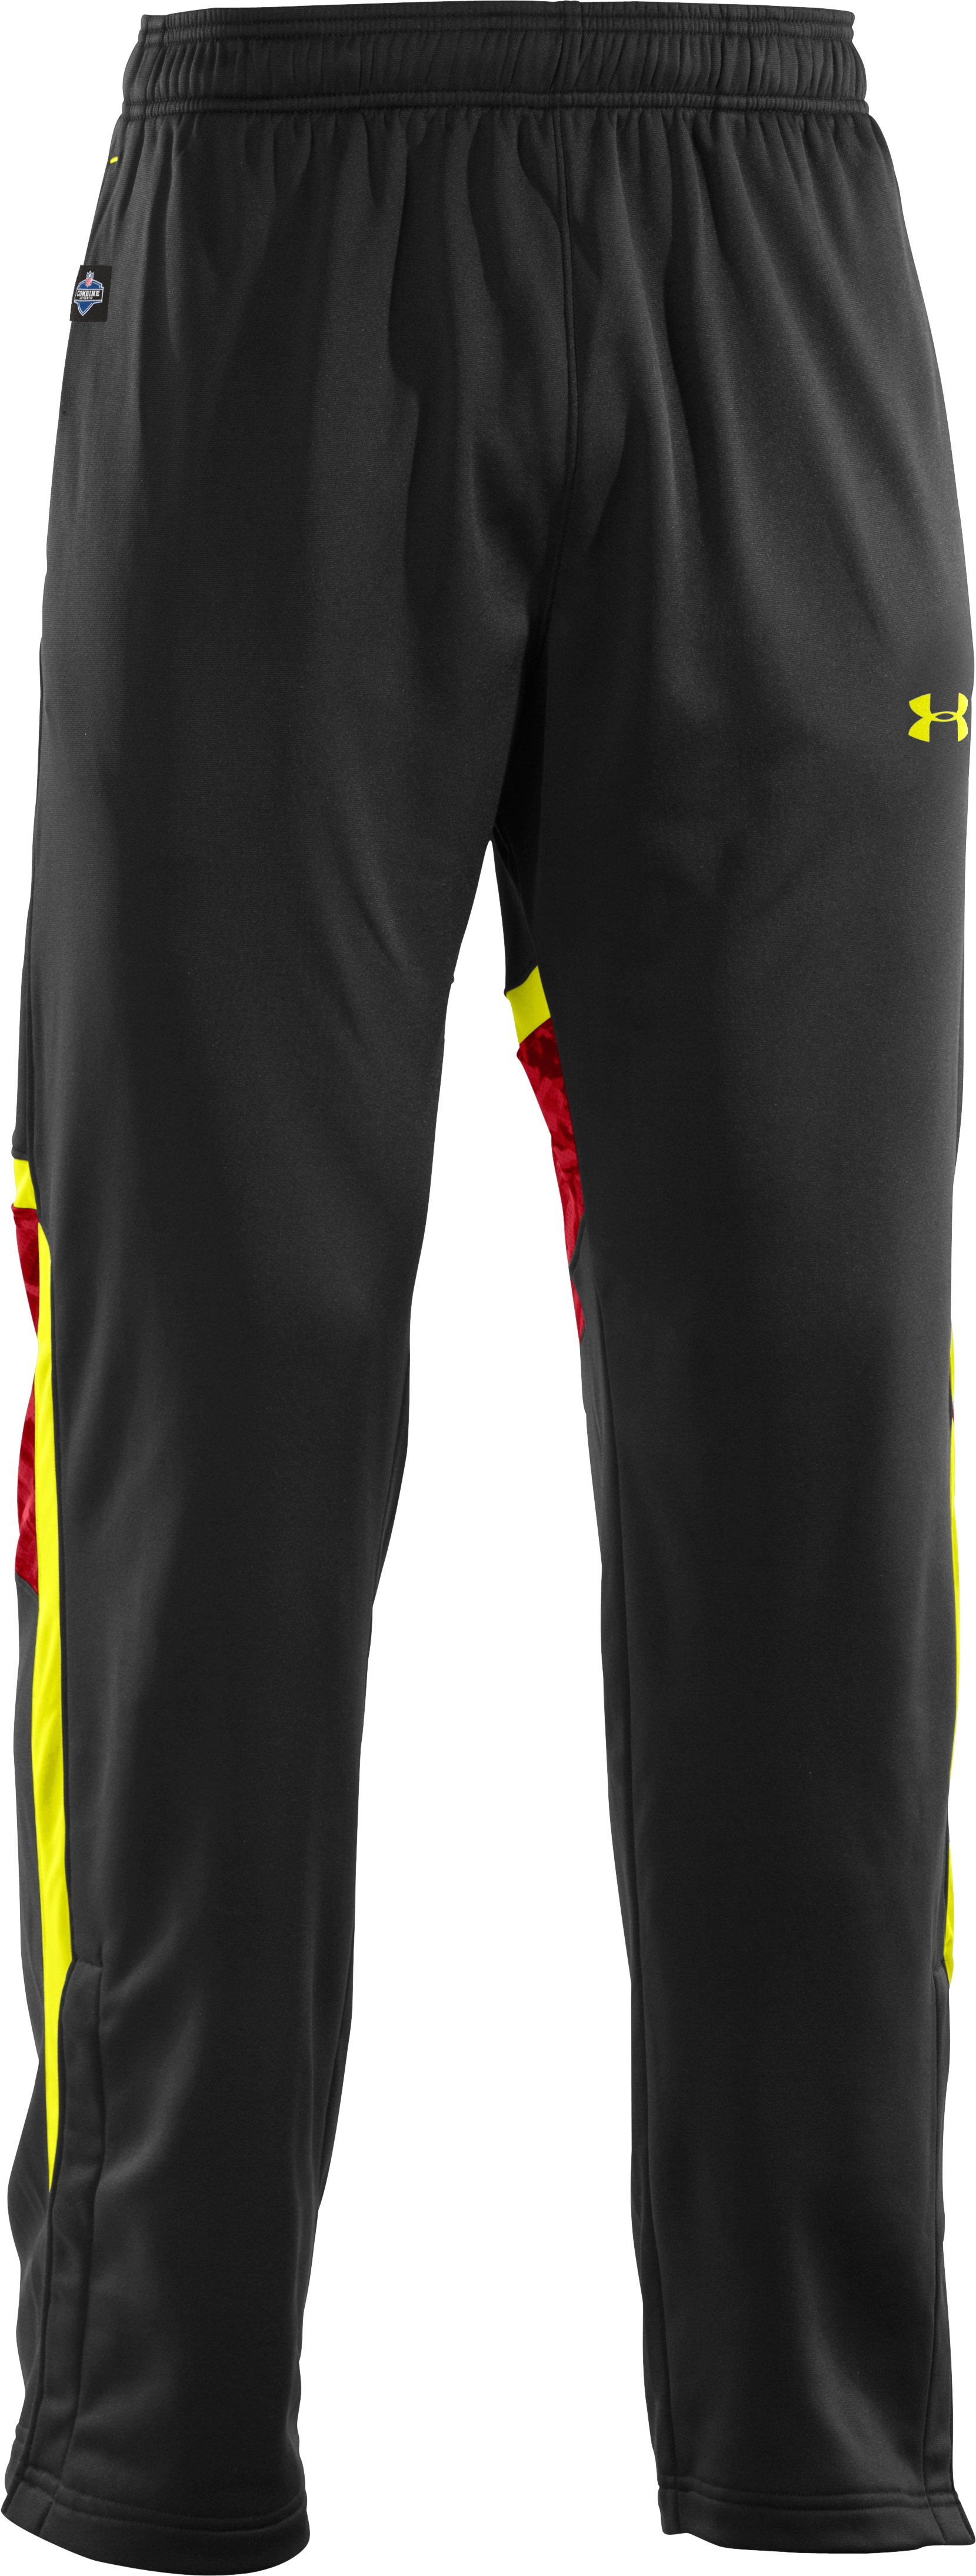 Men's NFL Combine Authentic Warm-Up Pants, Black , undefined